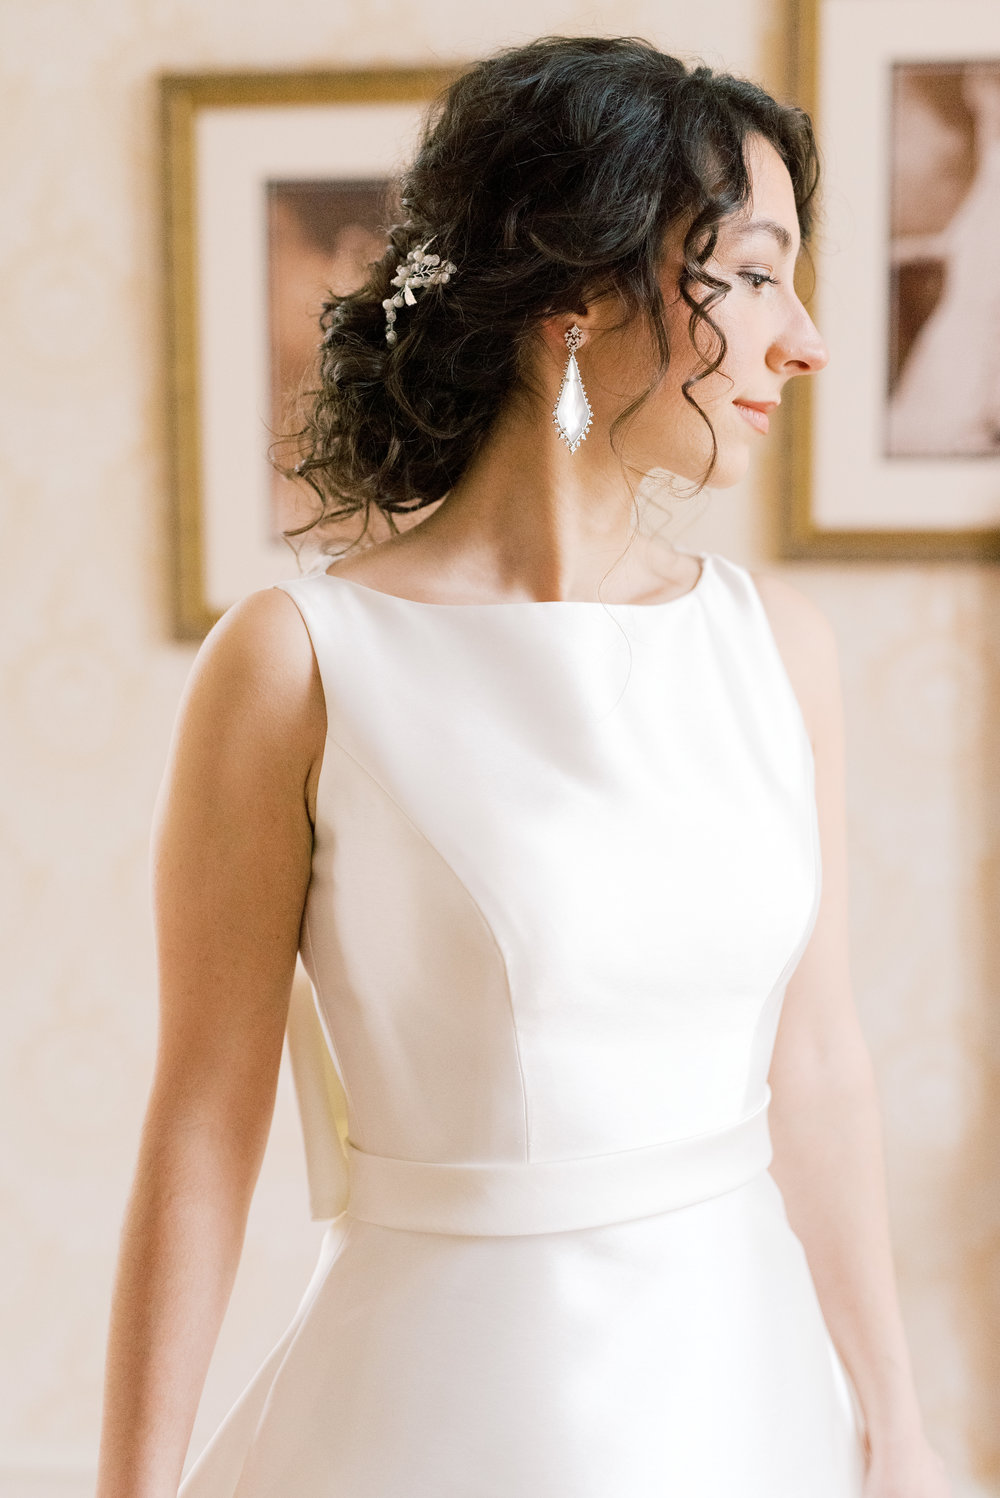 We loved how this bride's soft loose curls paired with her modern structured white wedding gown for her romantic and classic wedding day for their french inspired green and white Cairnwood Estate wedding